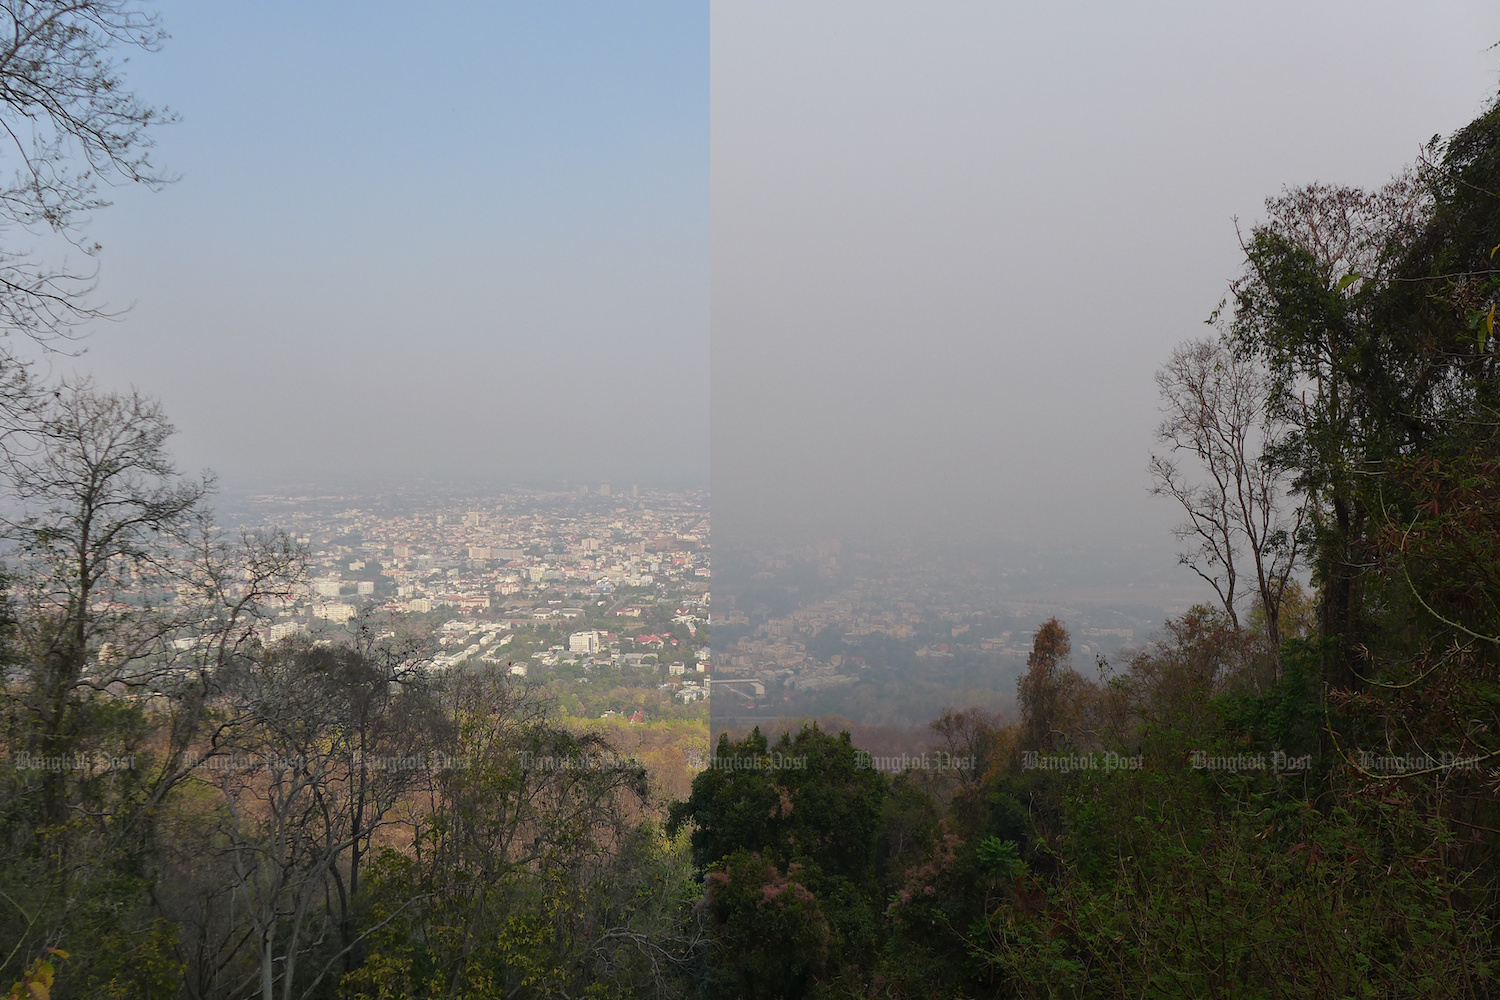 Composite showing Chiang Mai city as seen from Doi Suthep on March 5 and March 10 2021, when the PM2.5 level was 70.9 and 114.4 respectively. (Photo: Gary Boyle)